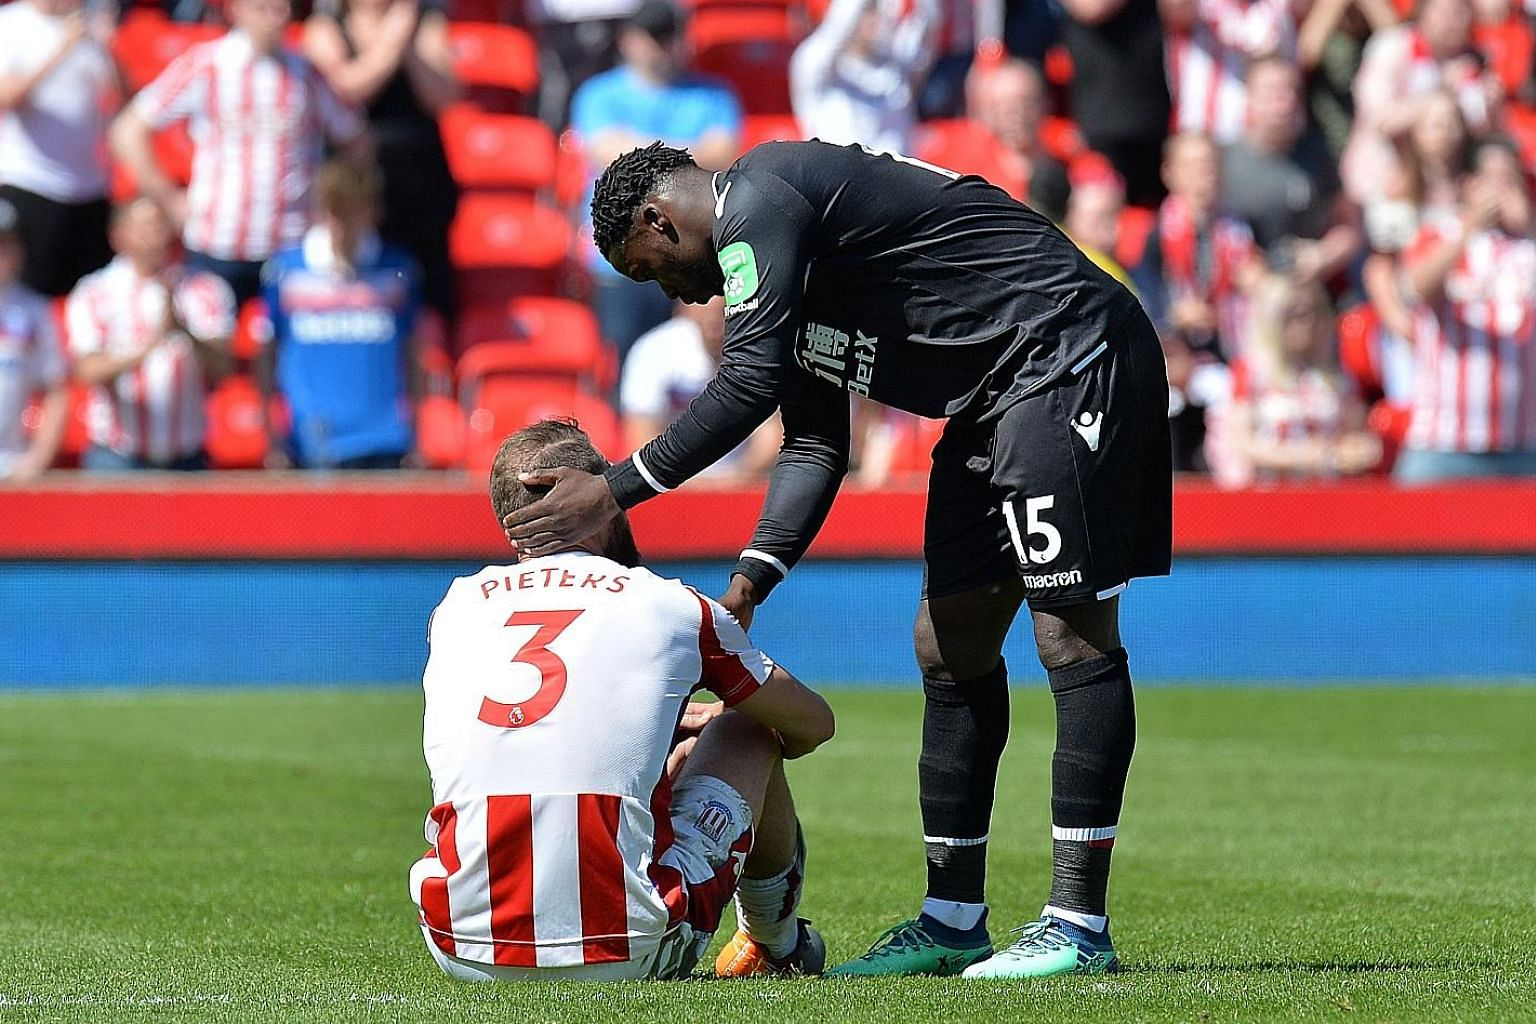 Crestfallen Stoke defender Erik Pieters is comforted by Crystal Palace's Jeffrey Schlupp after the visitors won 2-1 to relegate Stoke from the English Premier League.